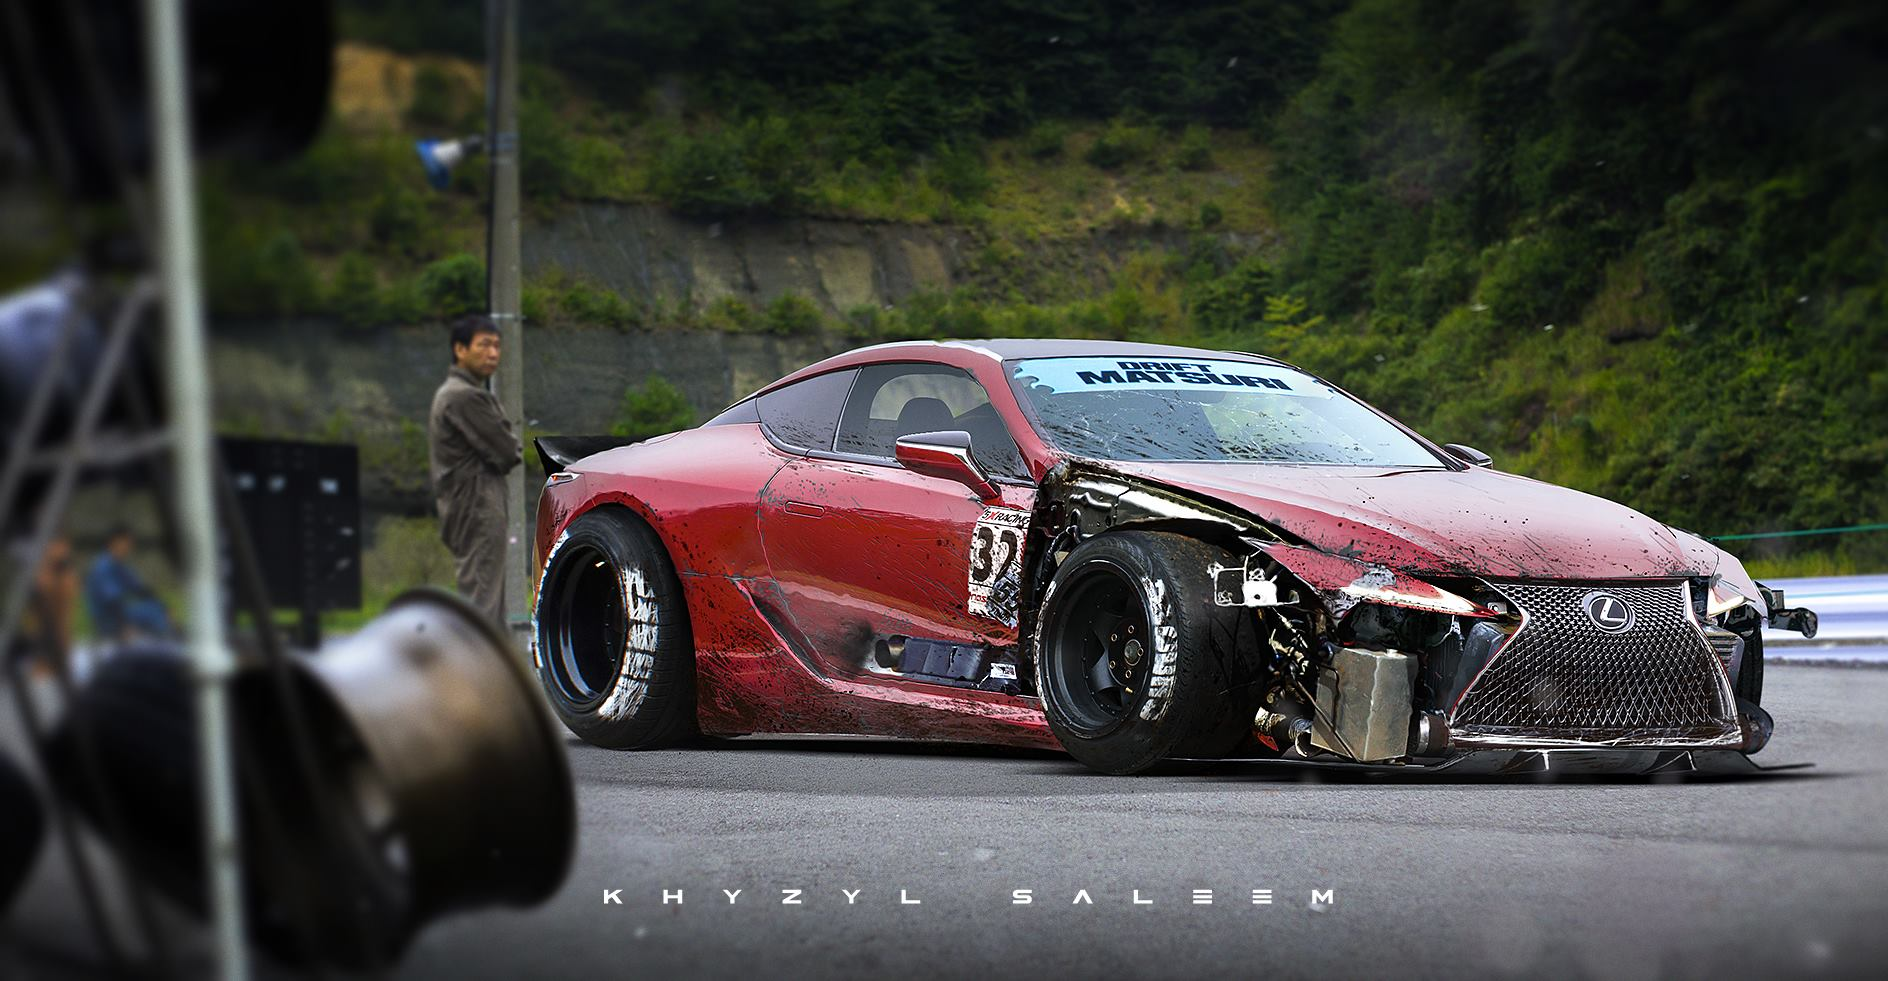 Ls 3d Cartoon Art Wallpaper Lexus Lc 500 Drift Car Rendering Follows The Story Of The